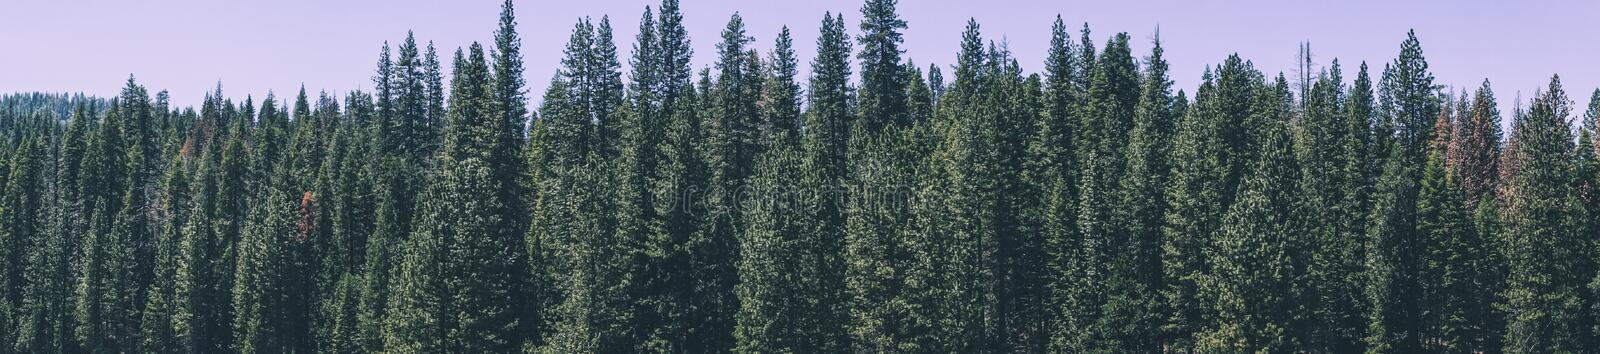 Summer holidays in the USA. Picturesque coniferous forests of the Yosemite Valley stock photos